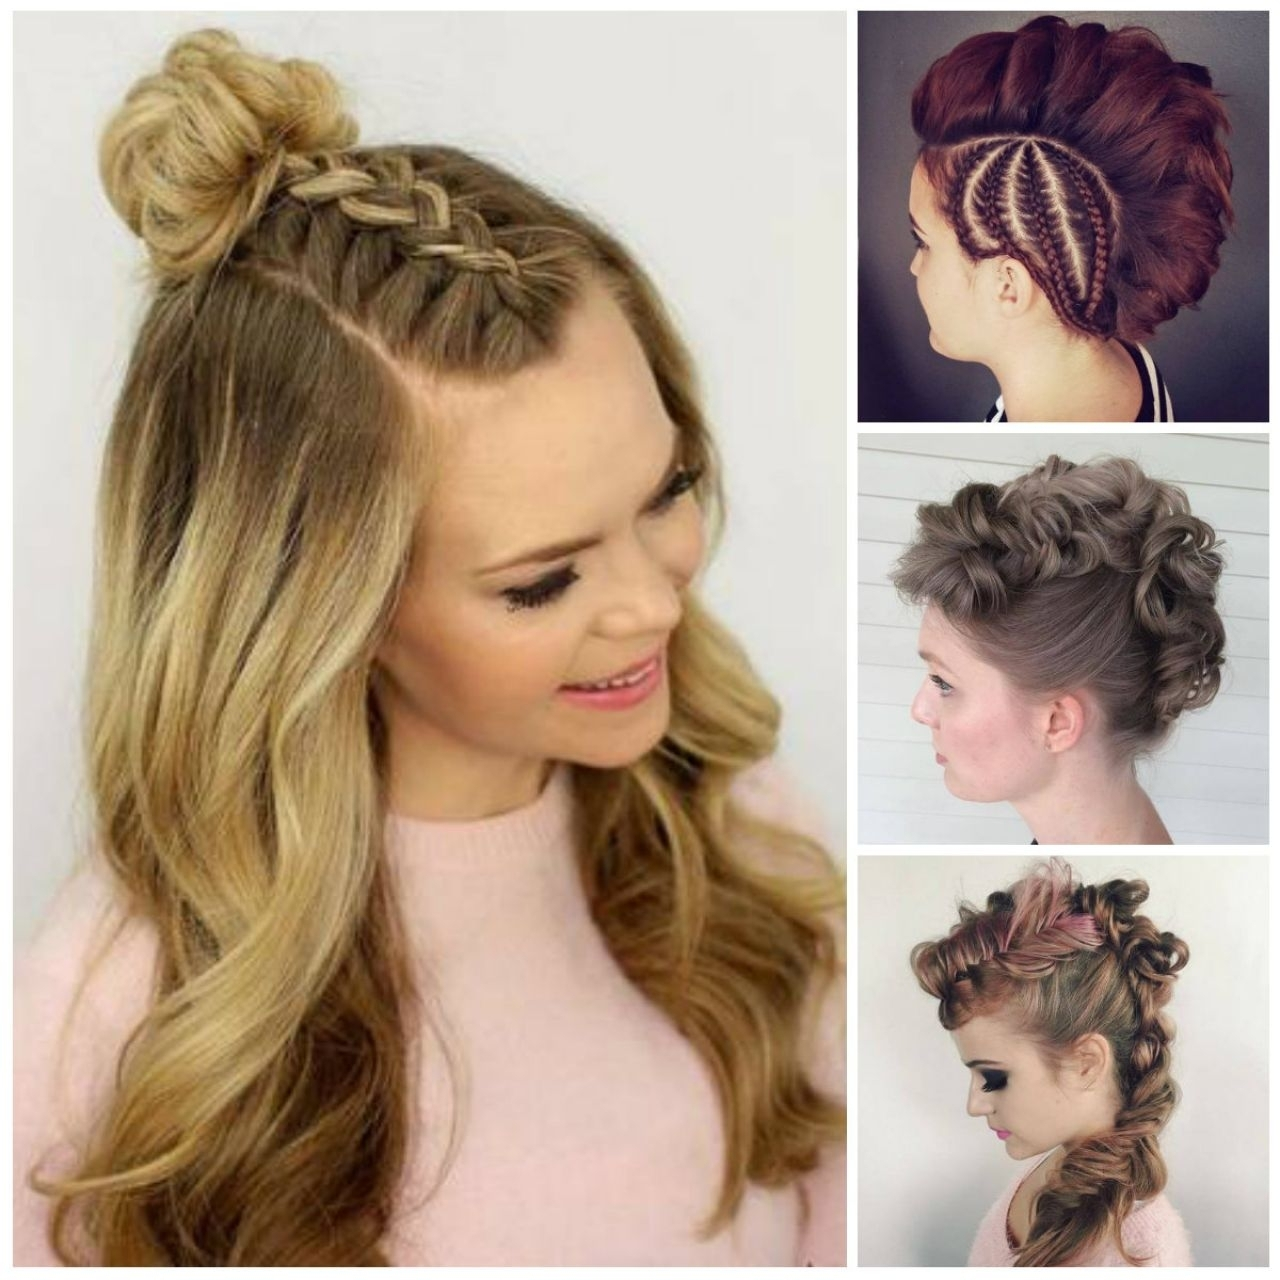 Casual Updo Long Straight Hair Casual Updo Hairstyles For Long Hair Inside Updo Hairstyles For Straight Hair (View 1 of 15)